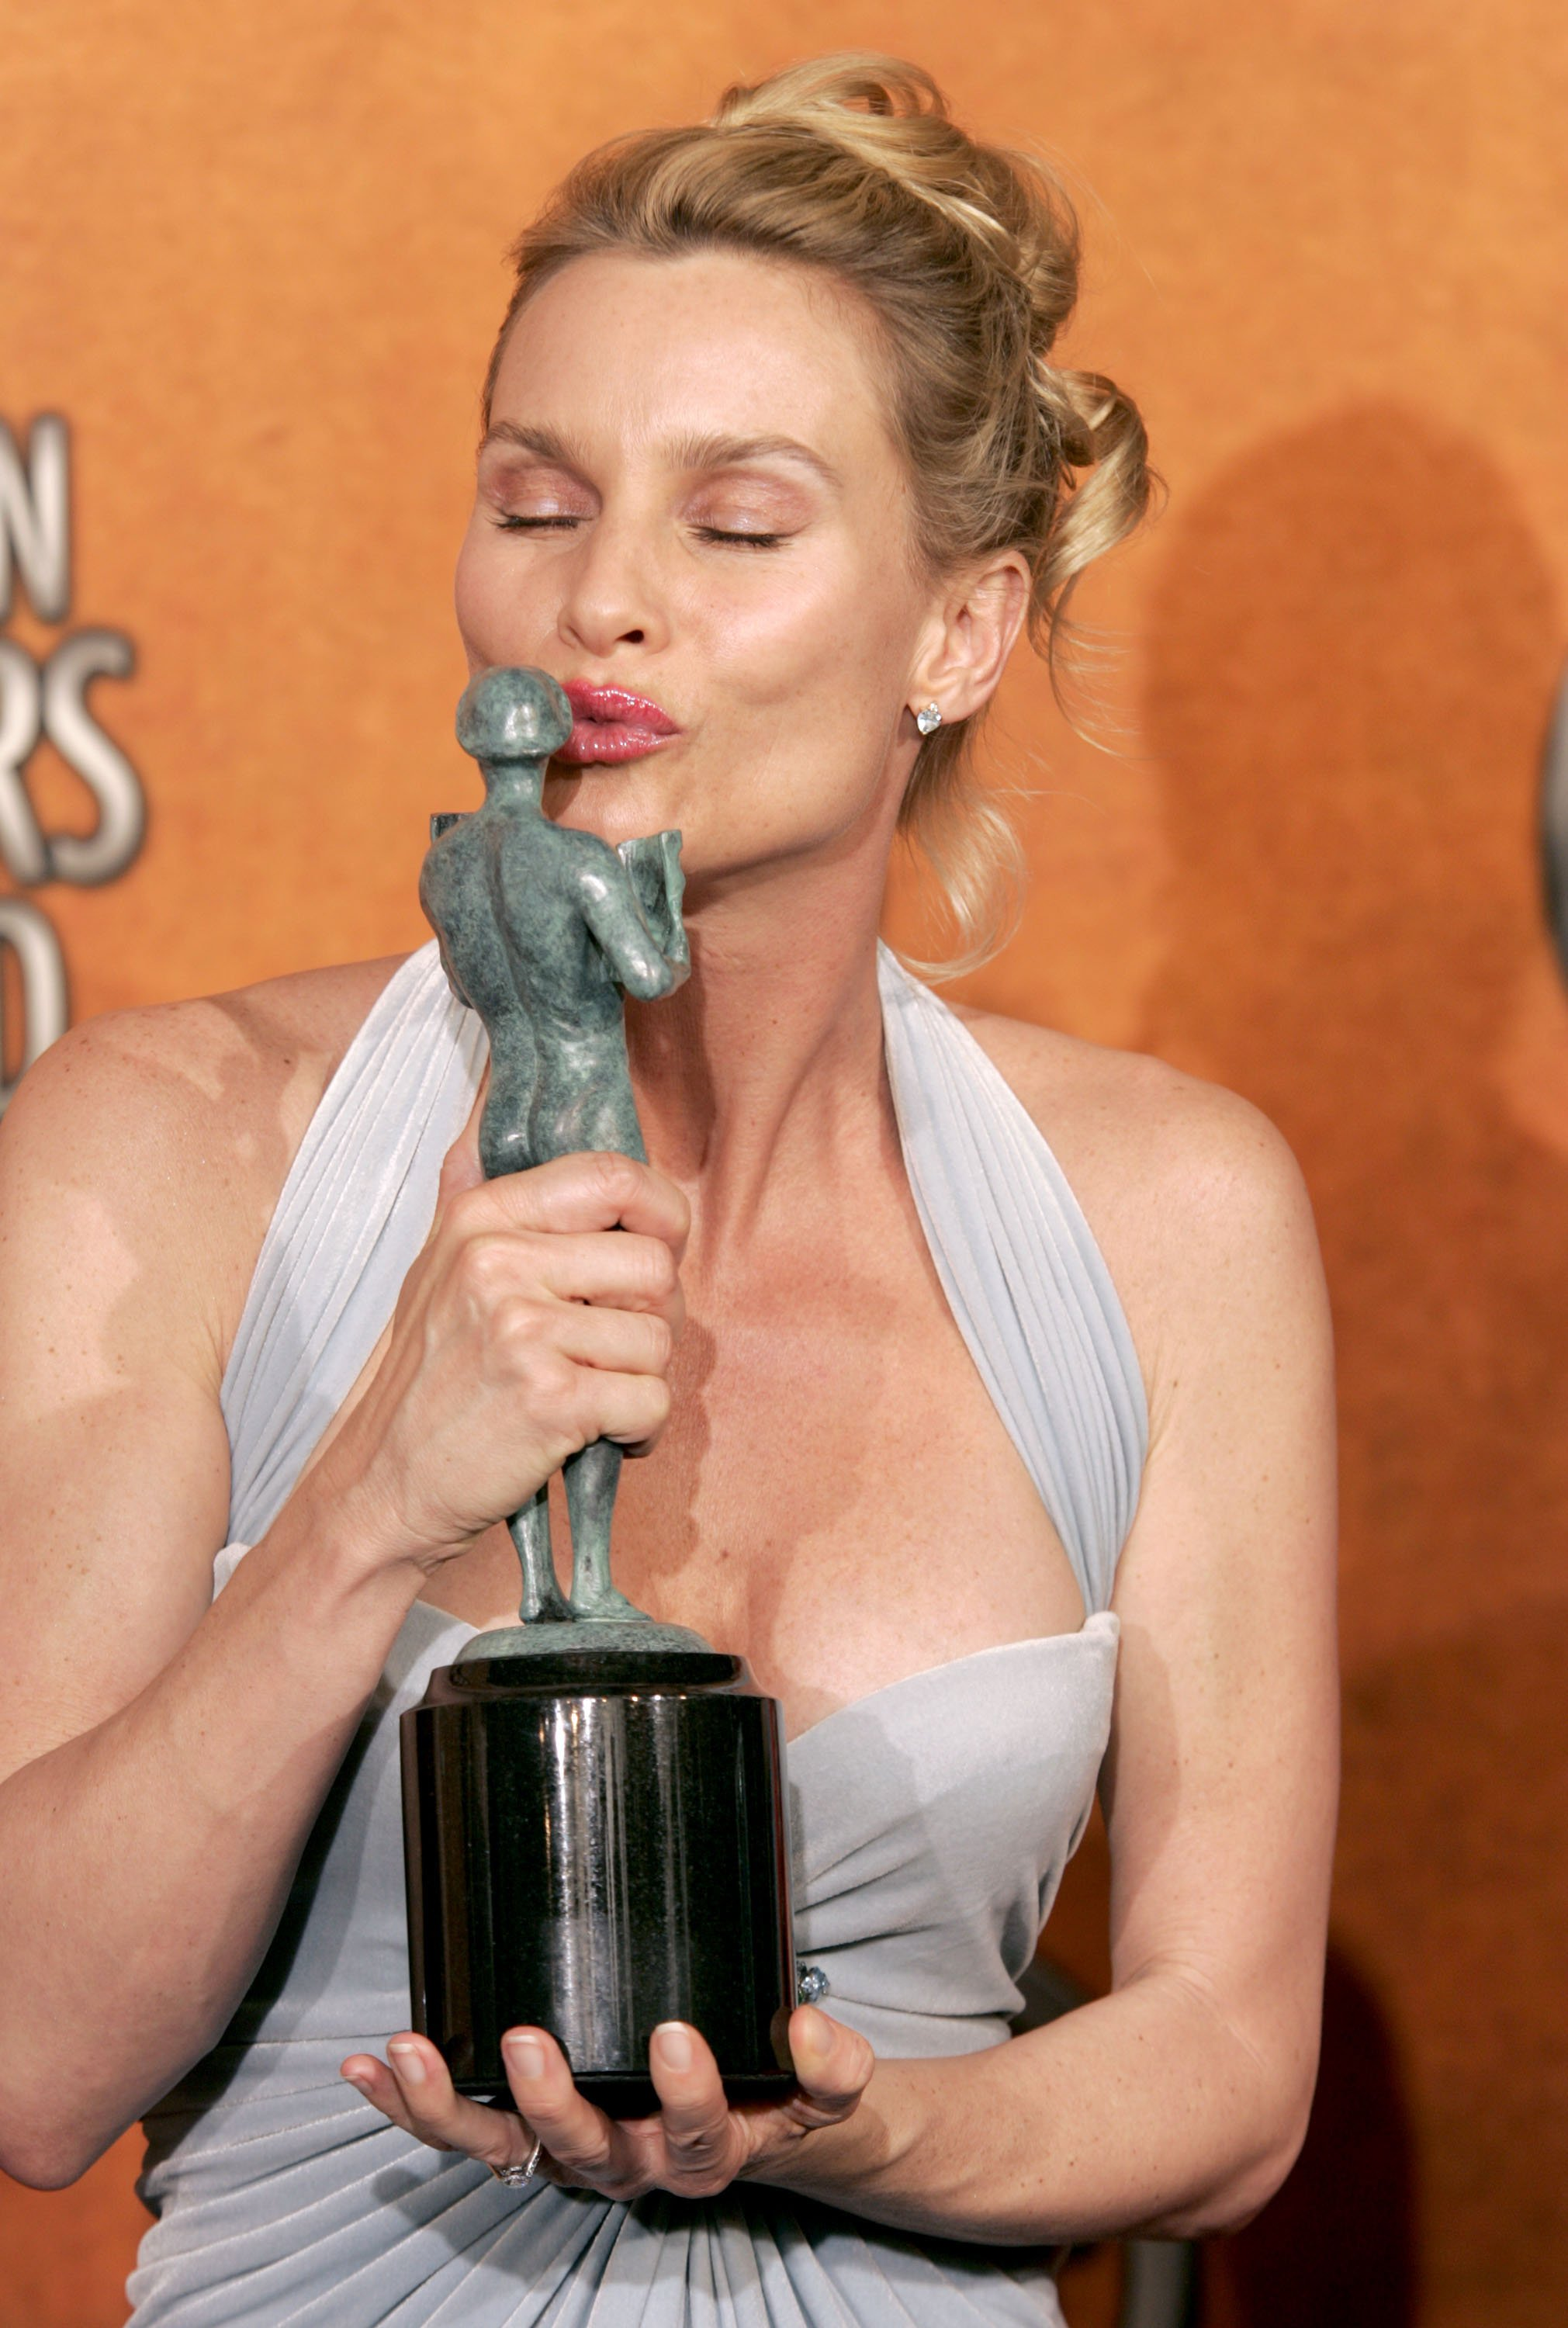 Nicollete Sheridan kissing the SAG Award that the show won for Outstanding Ensemble in a Comedy Series in 2005 | Photo: Getty Images